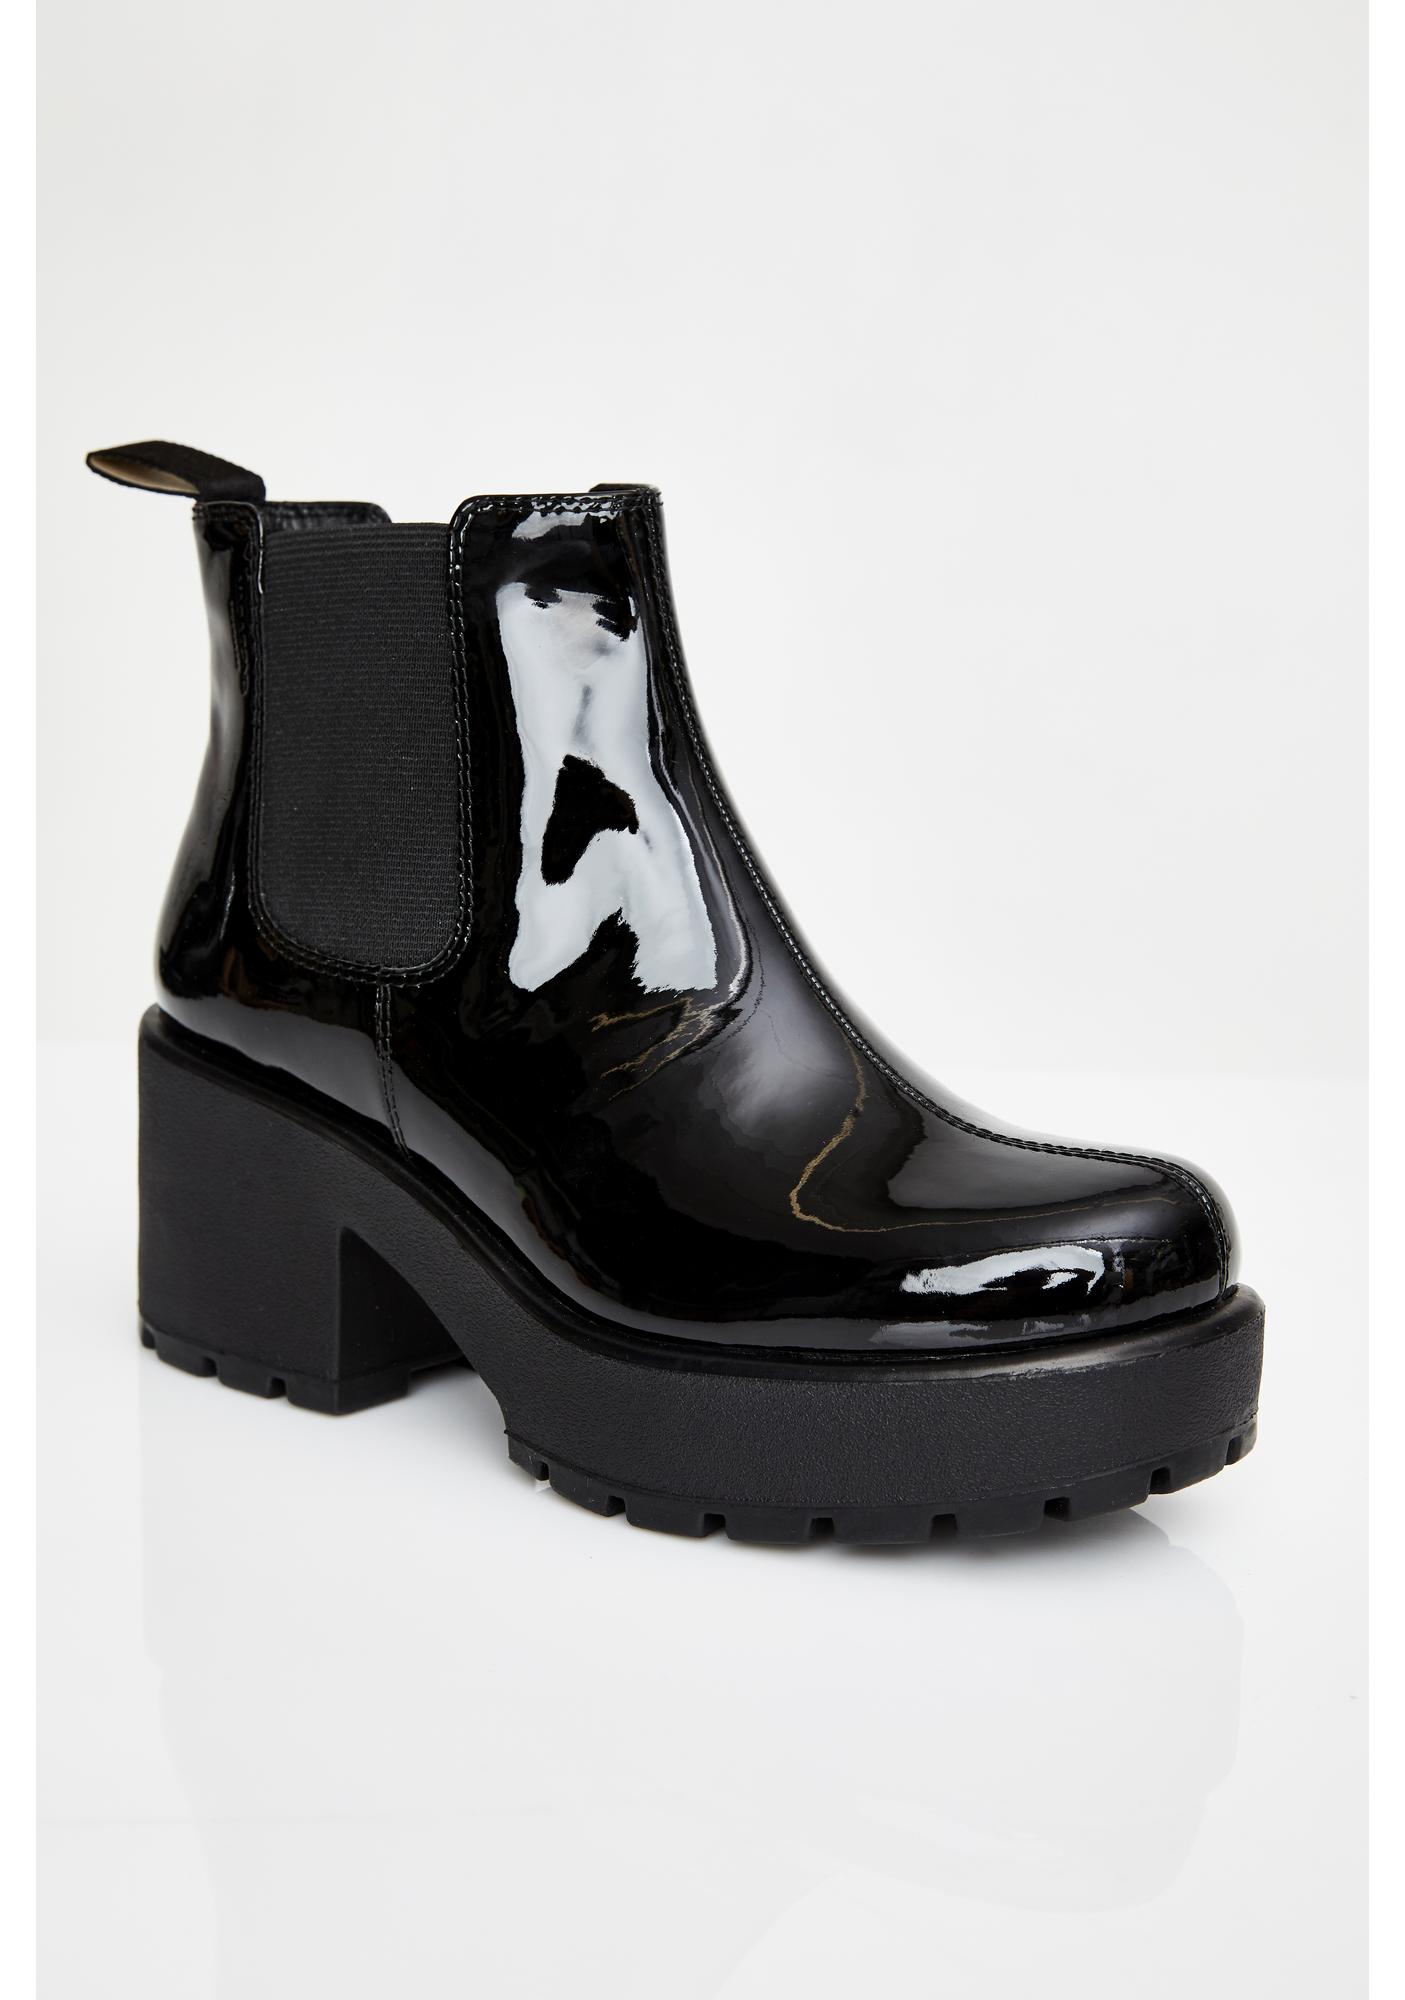 VAGABOND SHOEMAKERS Dioon Patent Leather Boots